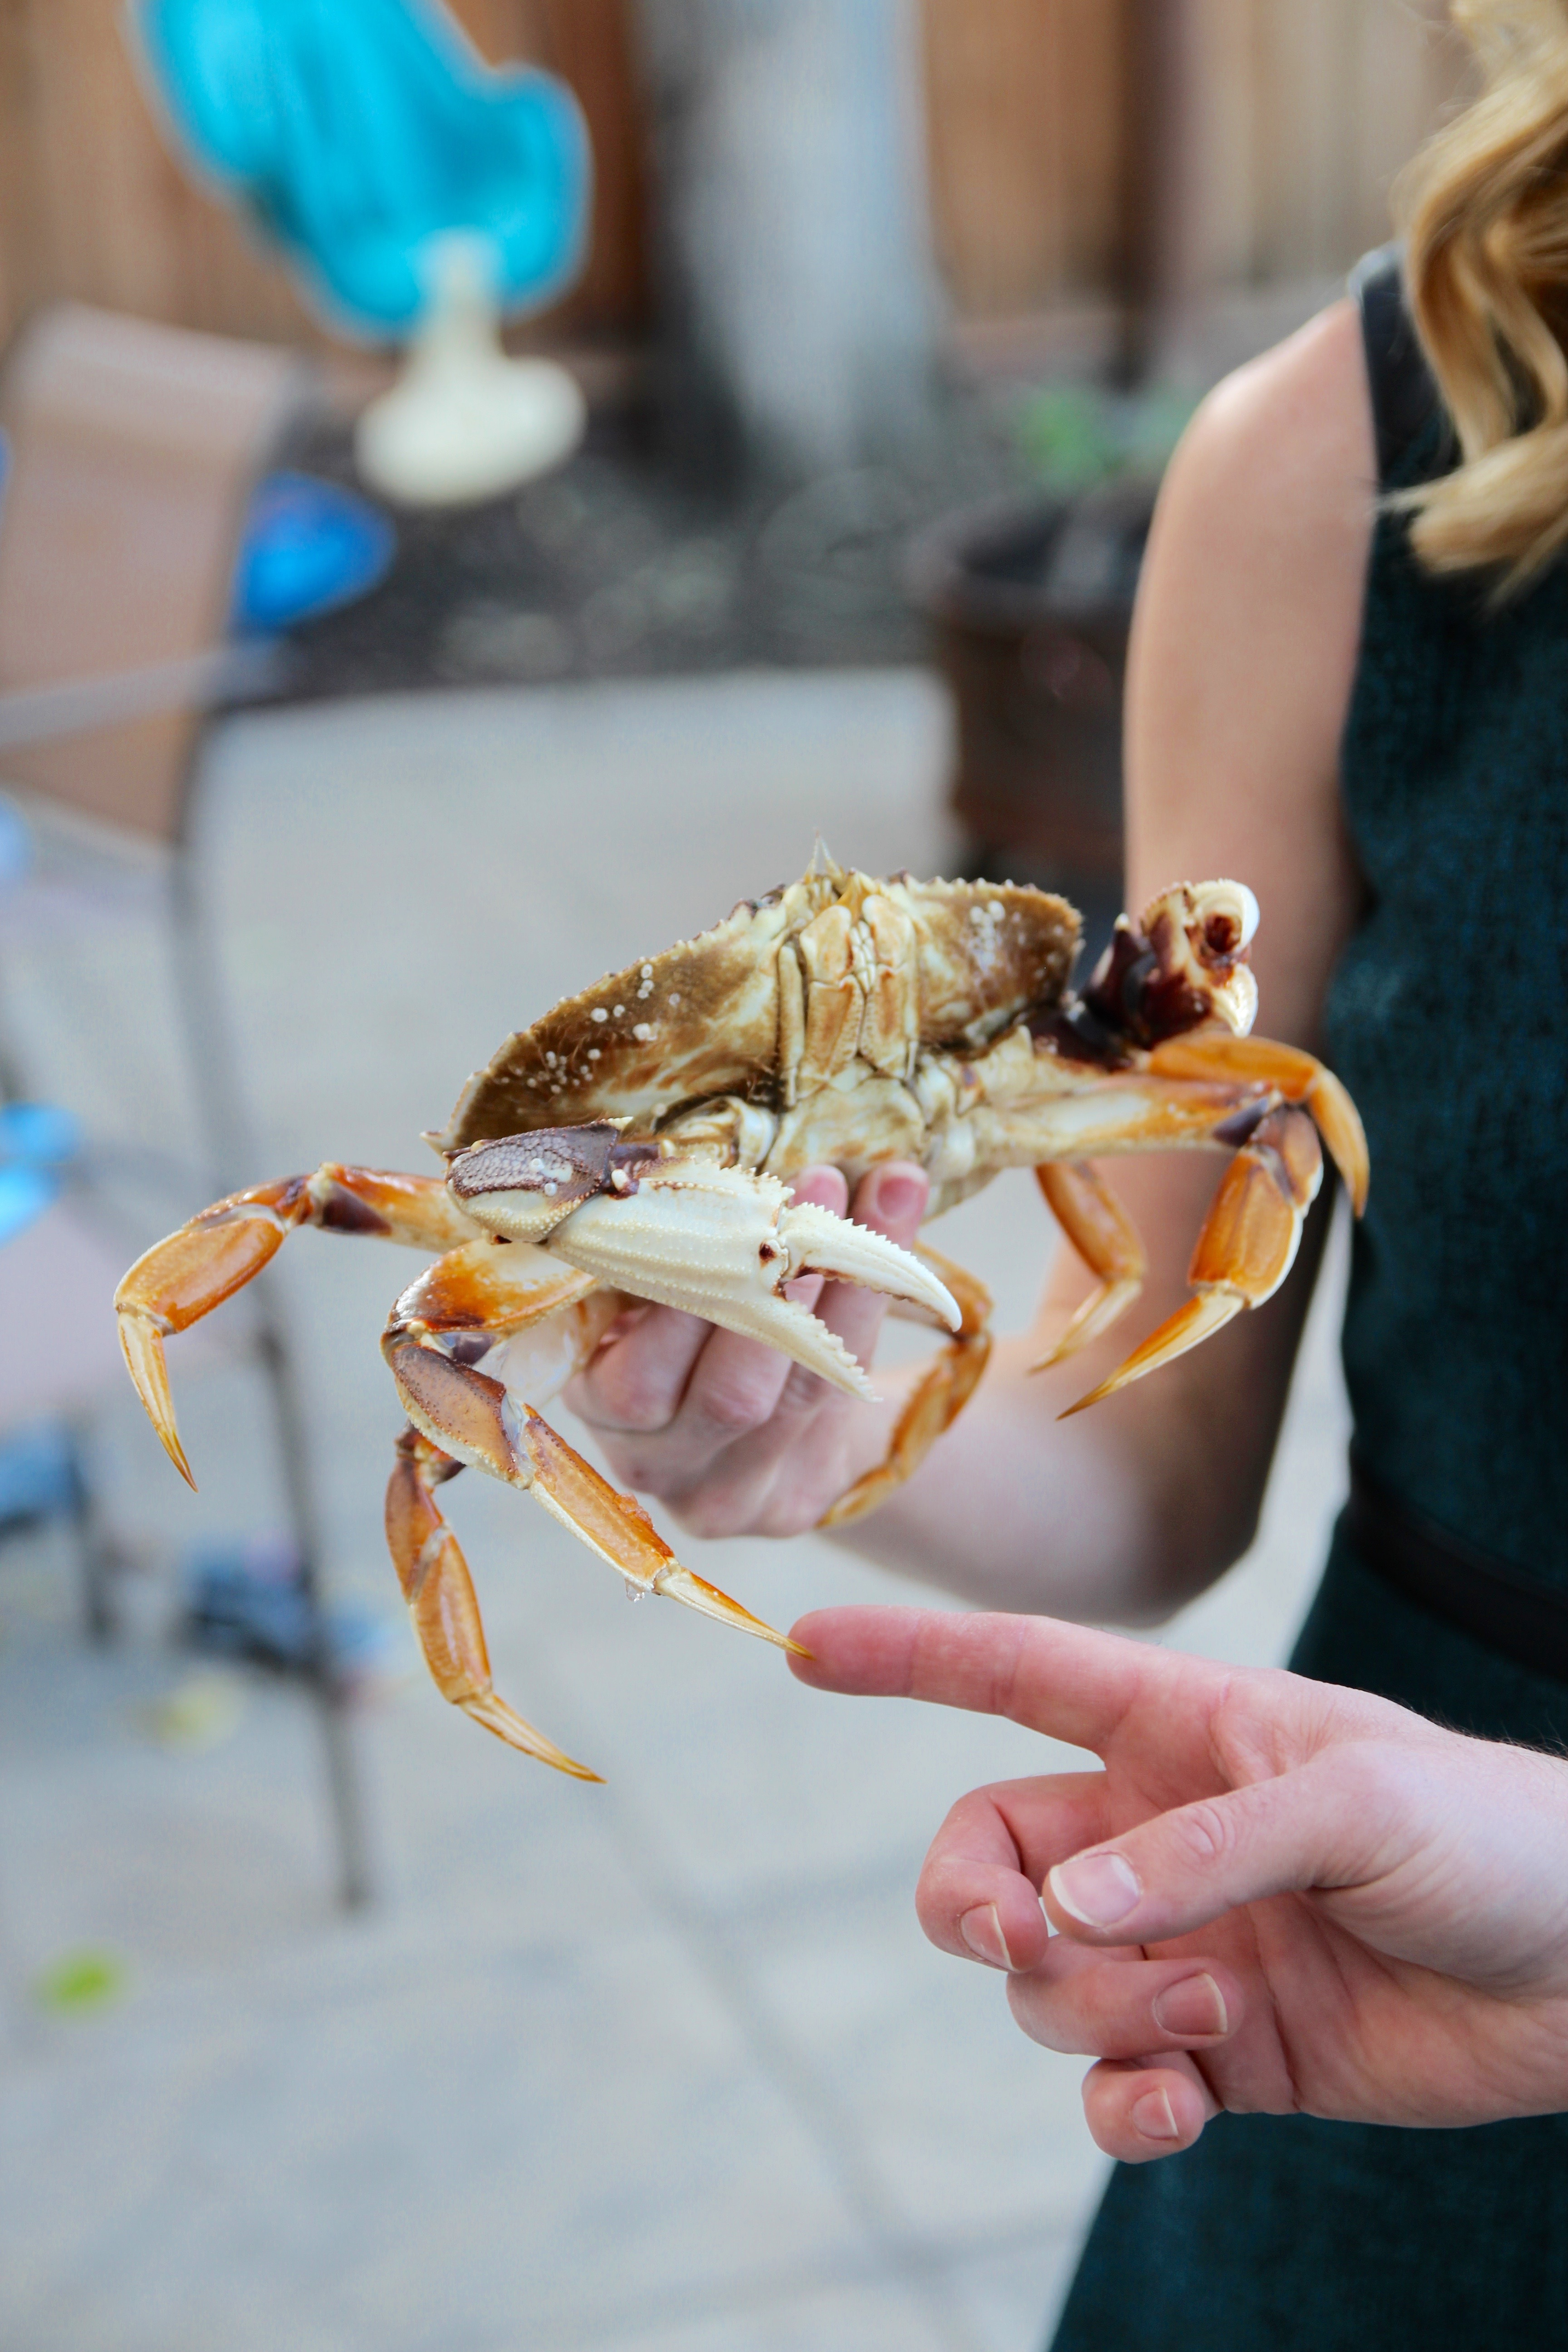 holding a huge dungeness crab